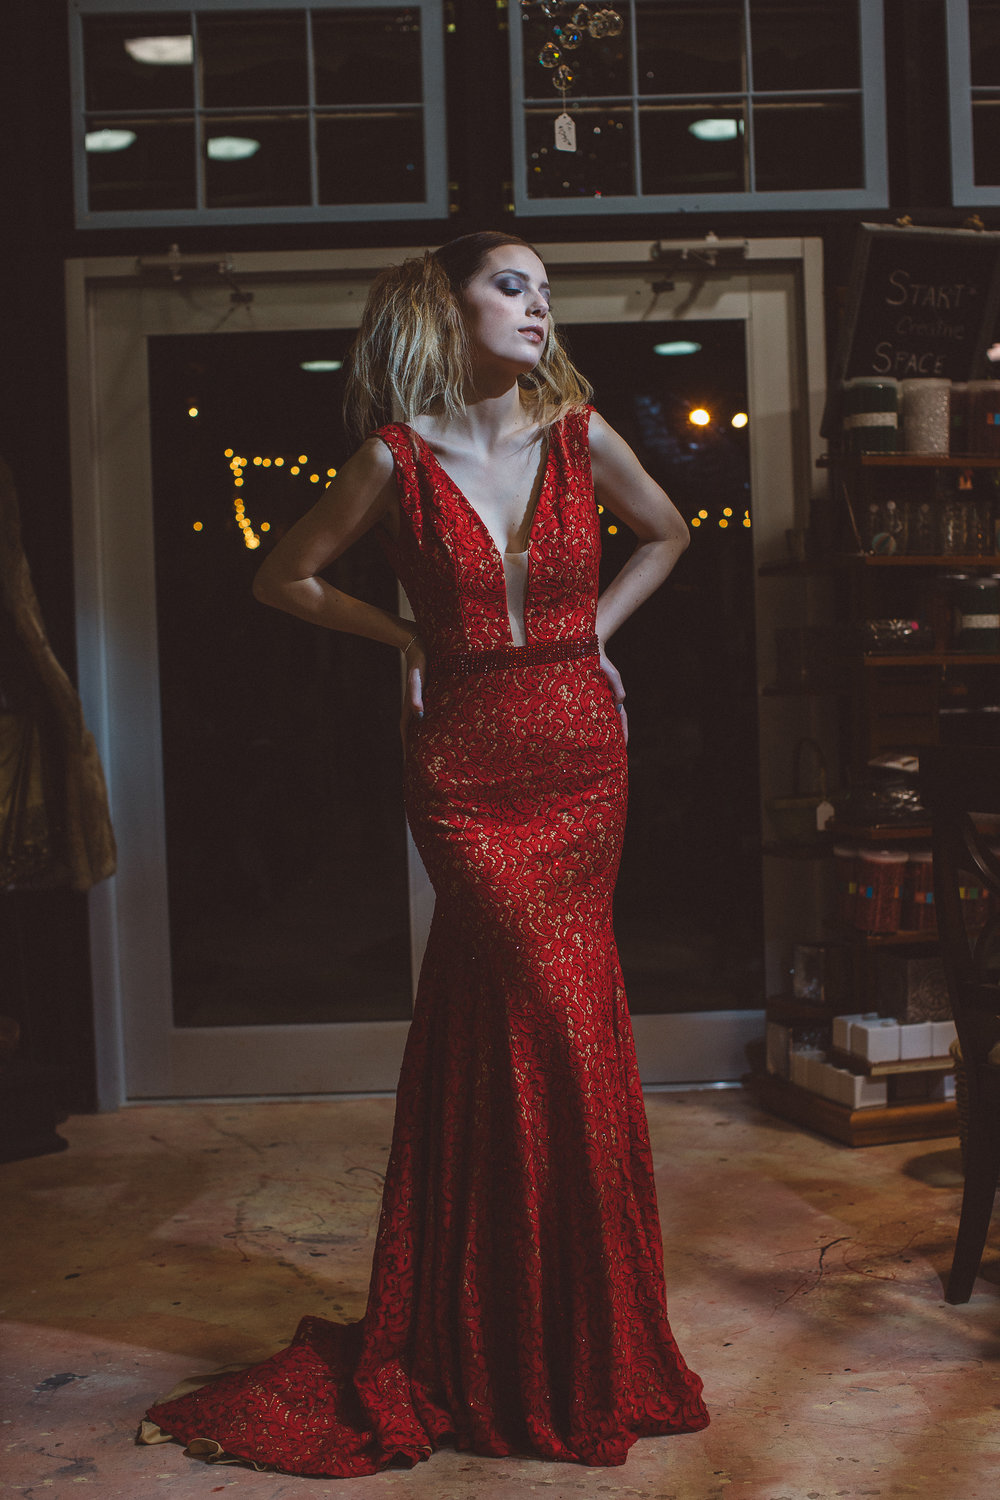 Unique Sparkly Red Plunging Neckline Floor Length Formal Dress